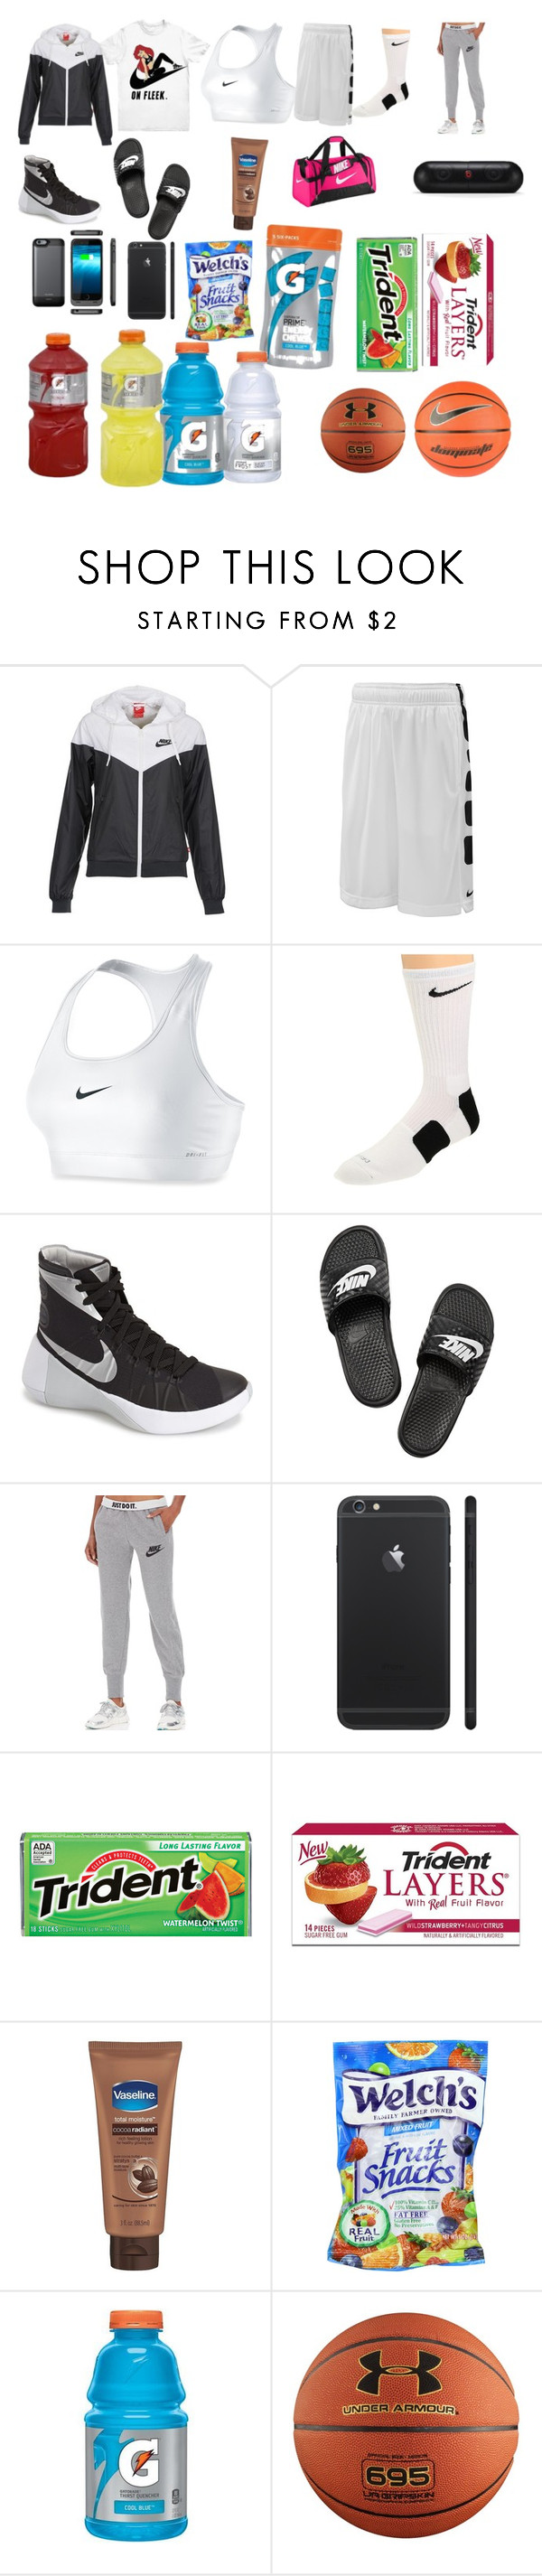 """on my way to the gym"" by londonwashere ❤ liked on Polyvore featuring NIKE, Under Armour, women's clothing, women's fashion, women, female, woman, misses and juniors"